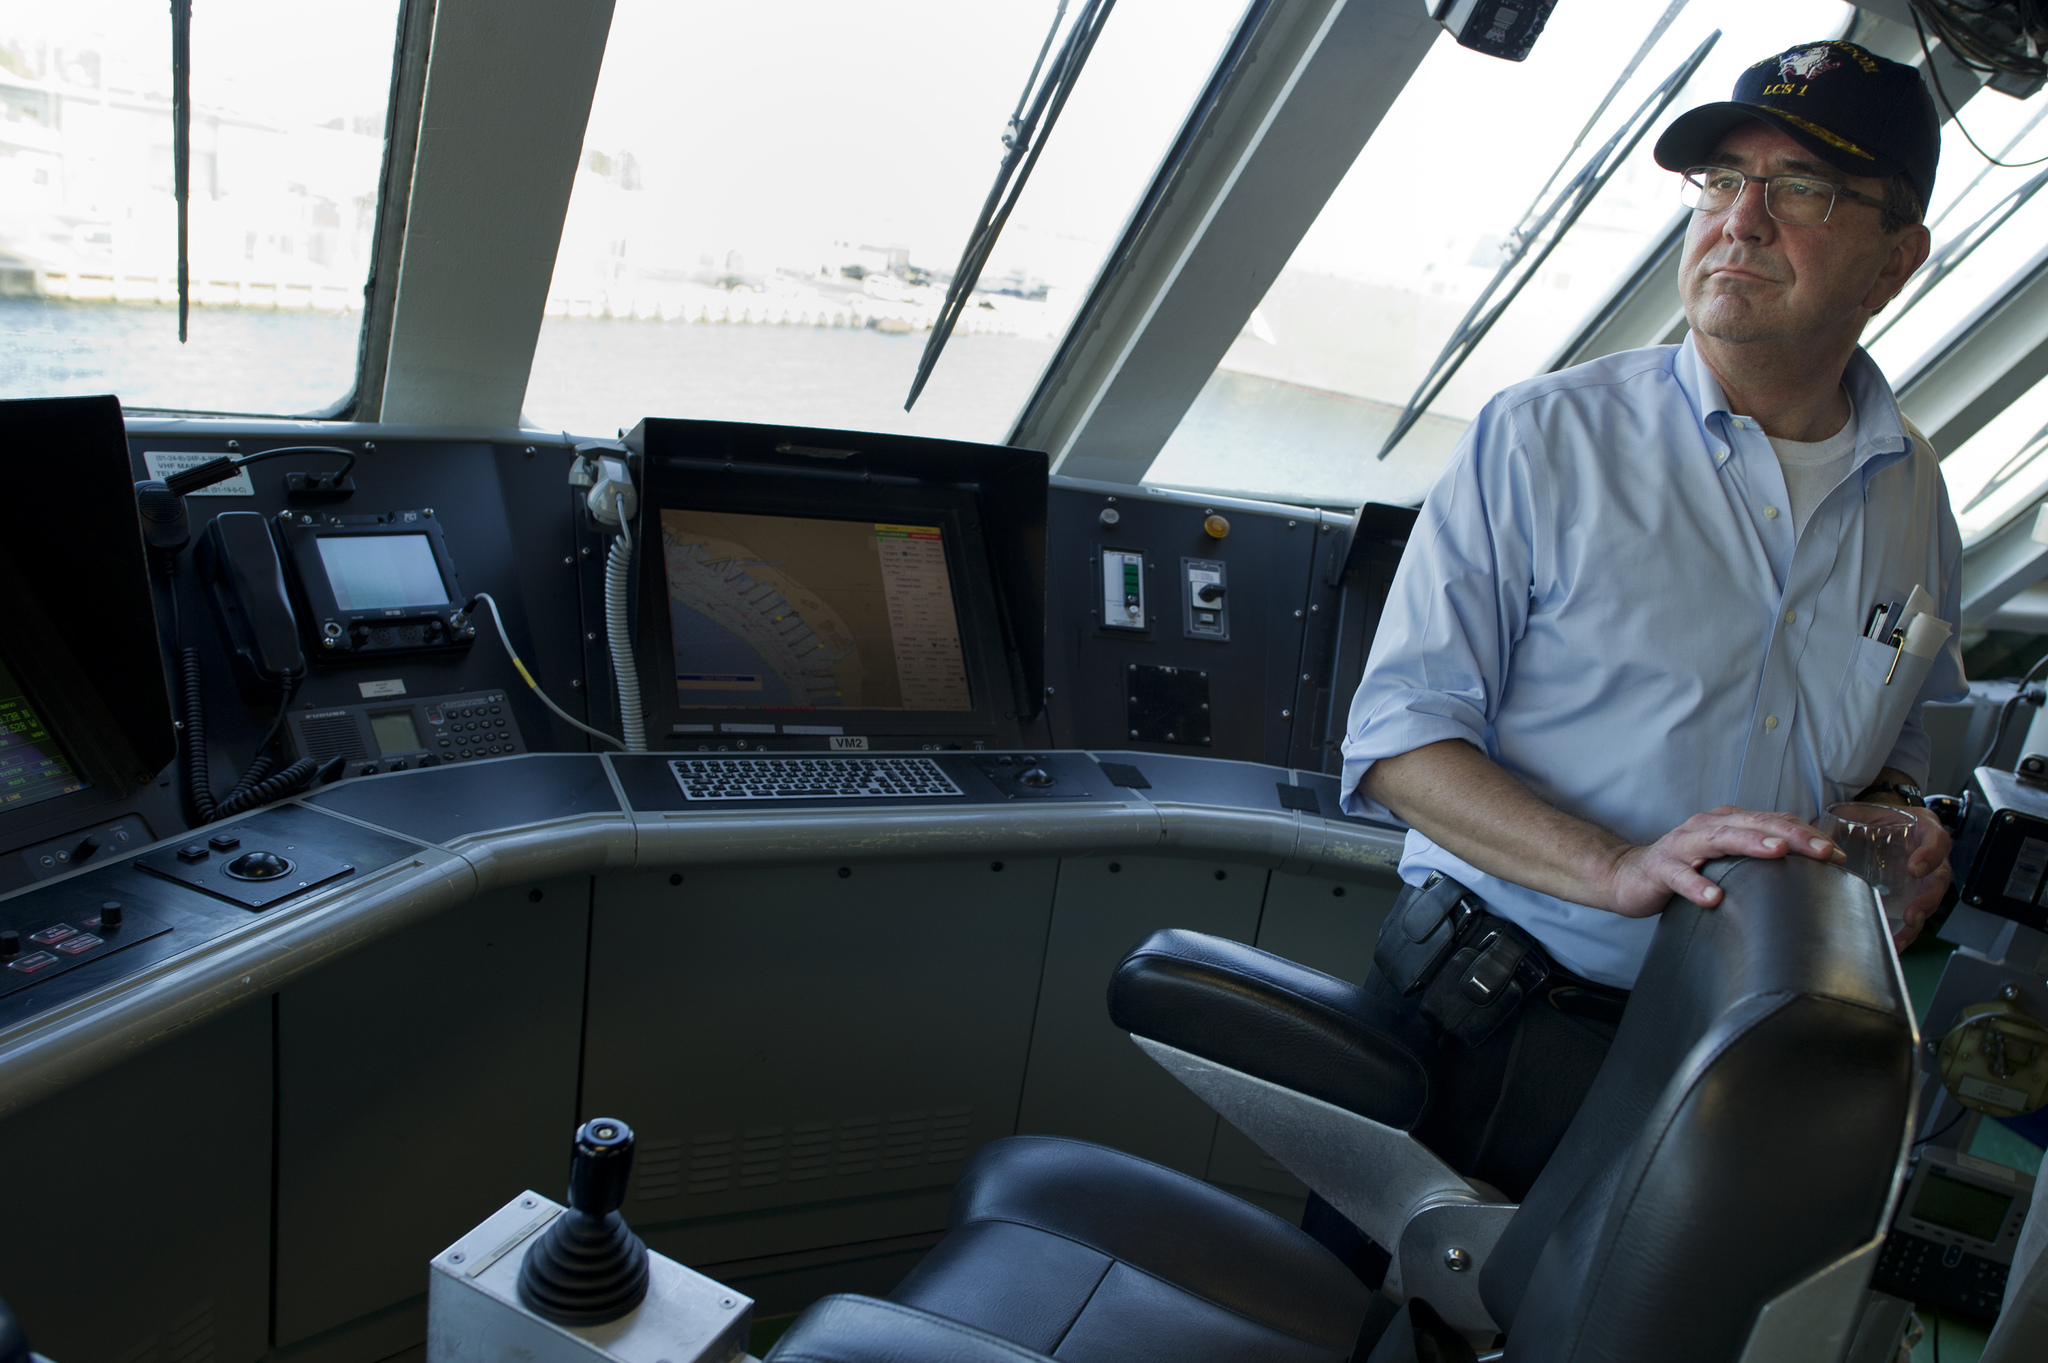 Then-Deputy Defense Secretary Ash Carter tours the bridge of the USS Freedom during a visit to the ship in San Diego in 2012. DoD Photo